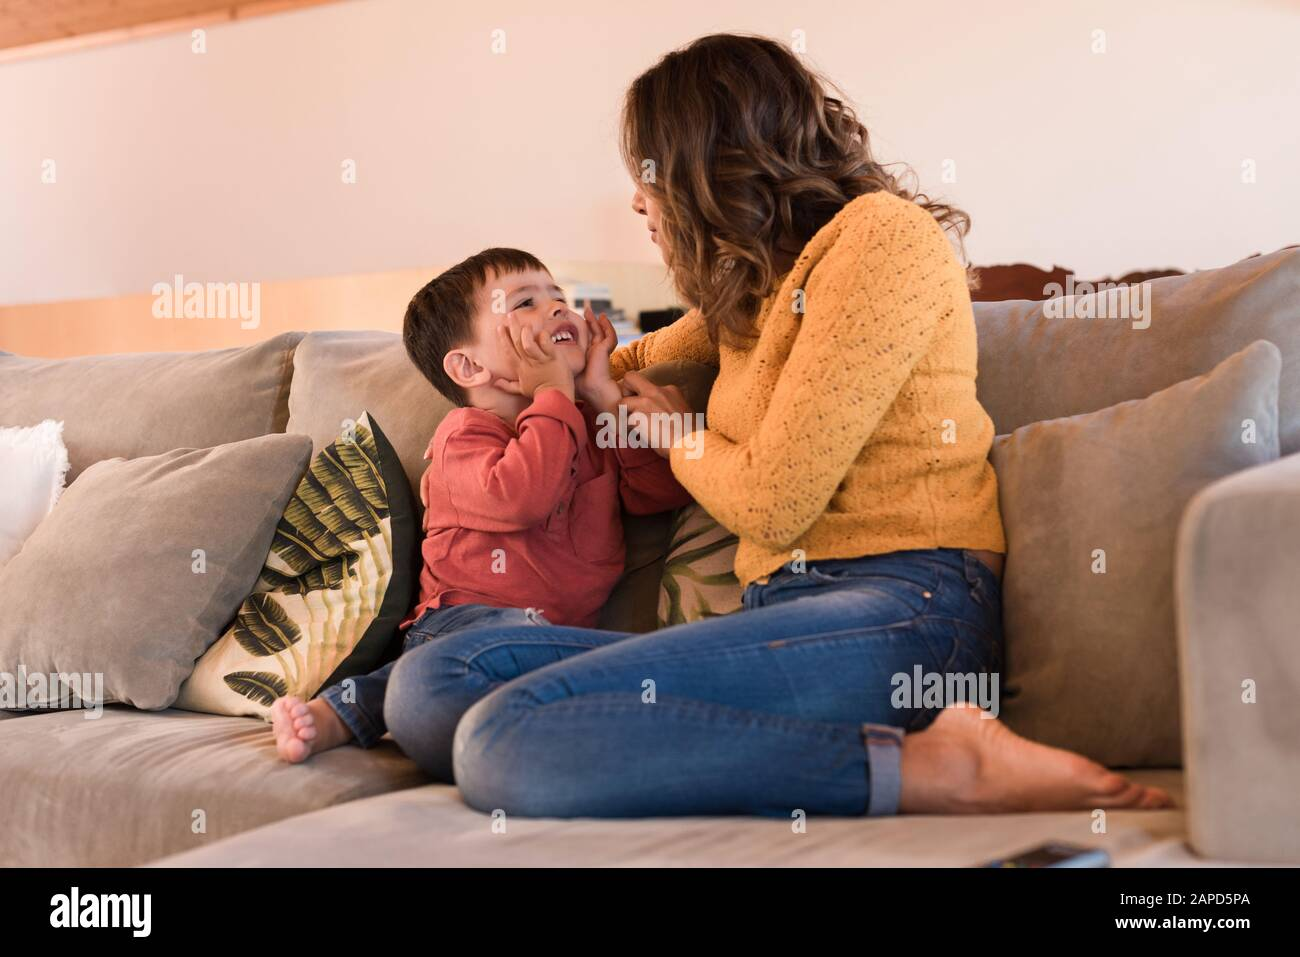 Mother and son relaxing together in the living room Stock Photo